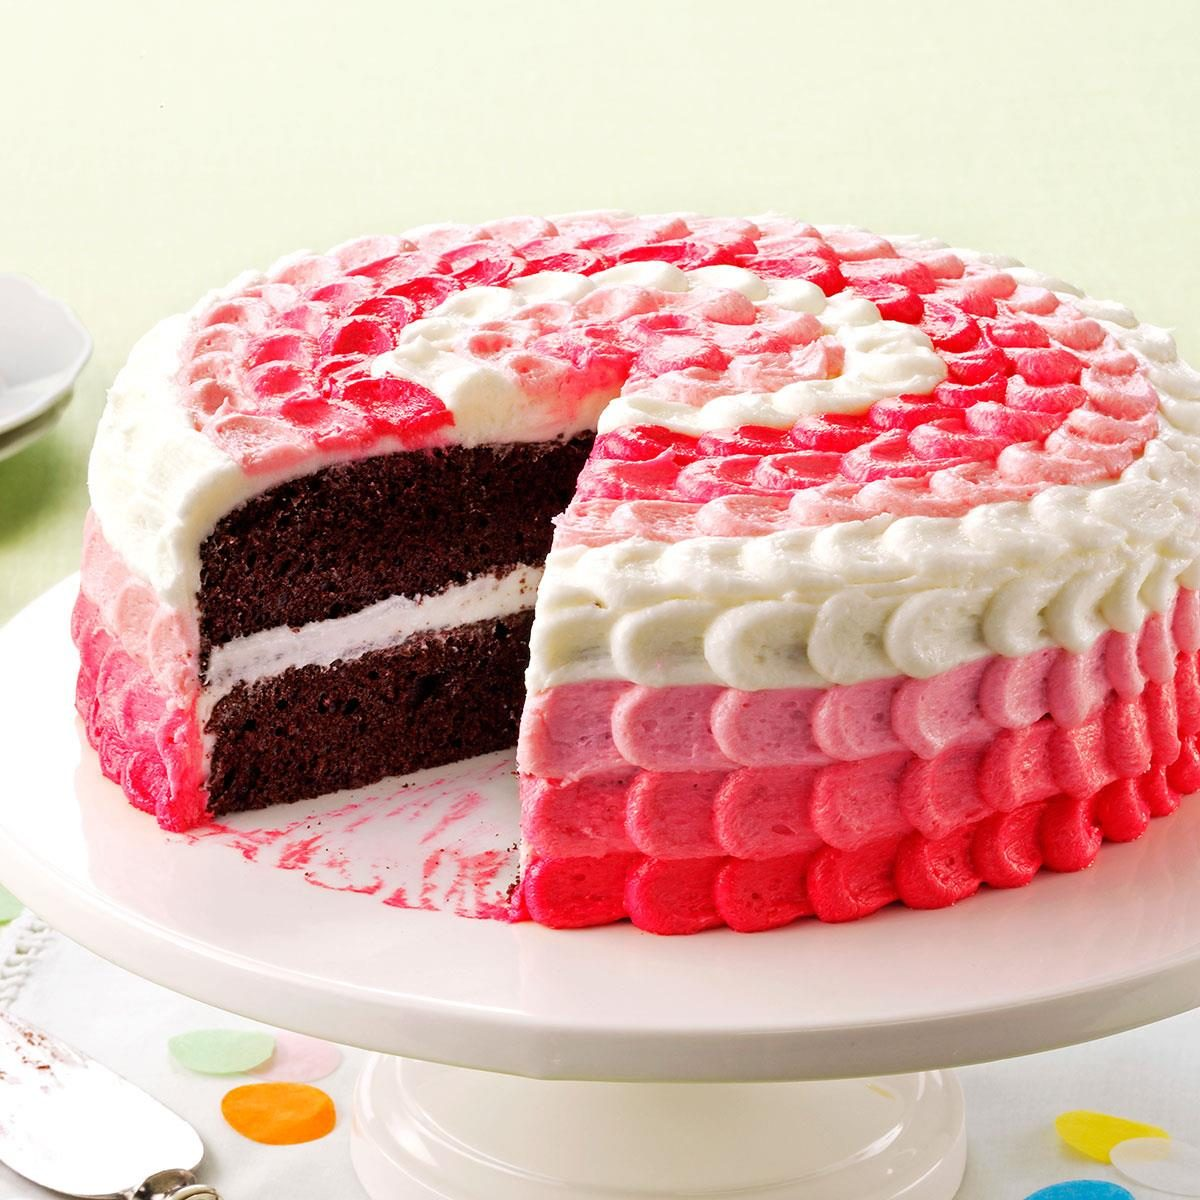 Cake Decor Recipes : Cake decorating icing recipes easy - Food cake recipes